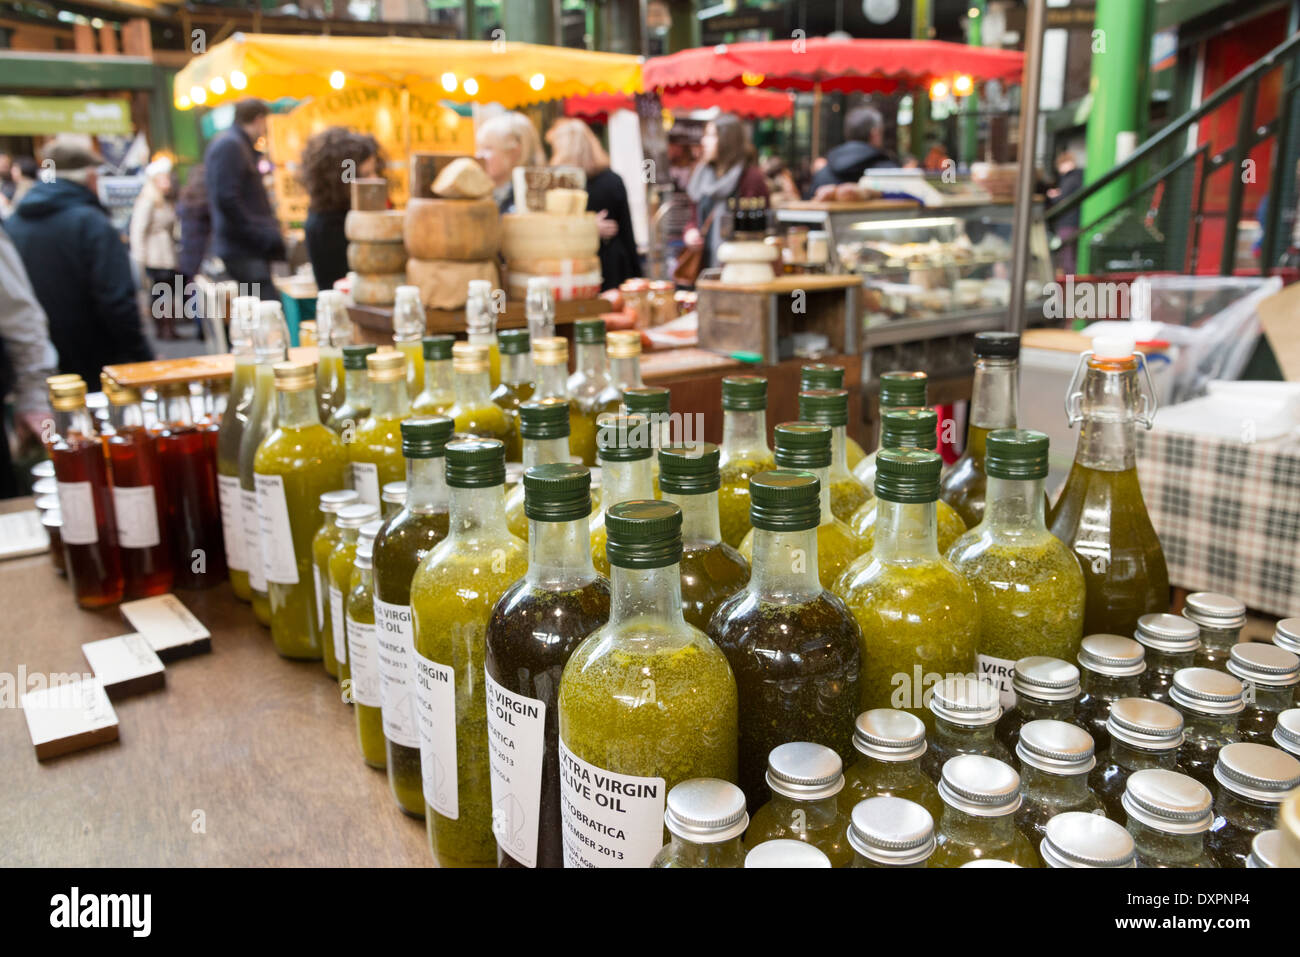 Italian olive oil stall in Borough Market, London, England, UK - Stock Image